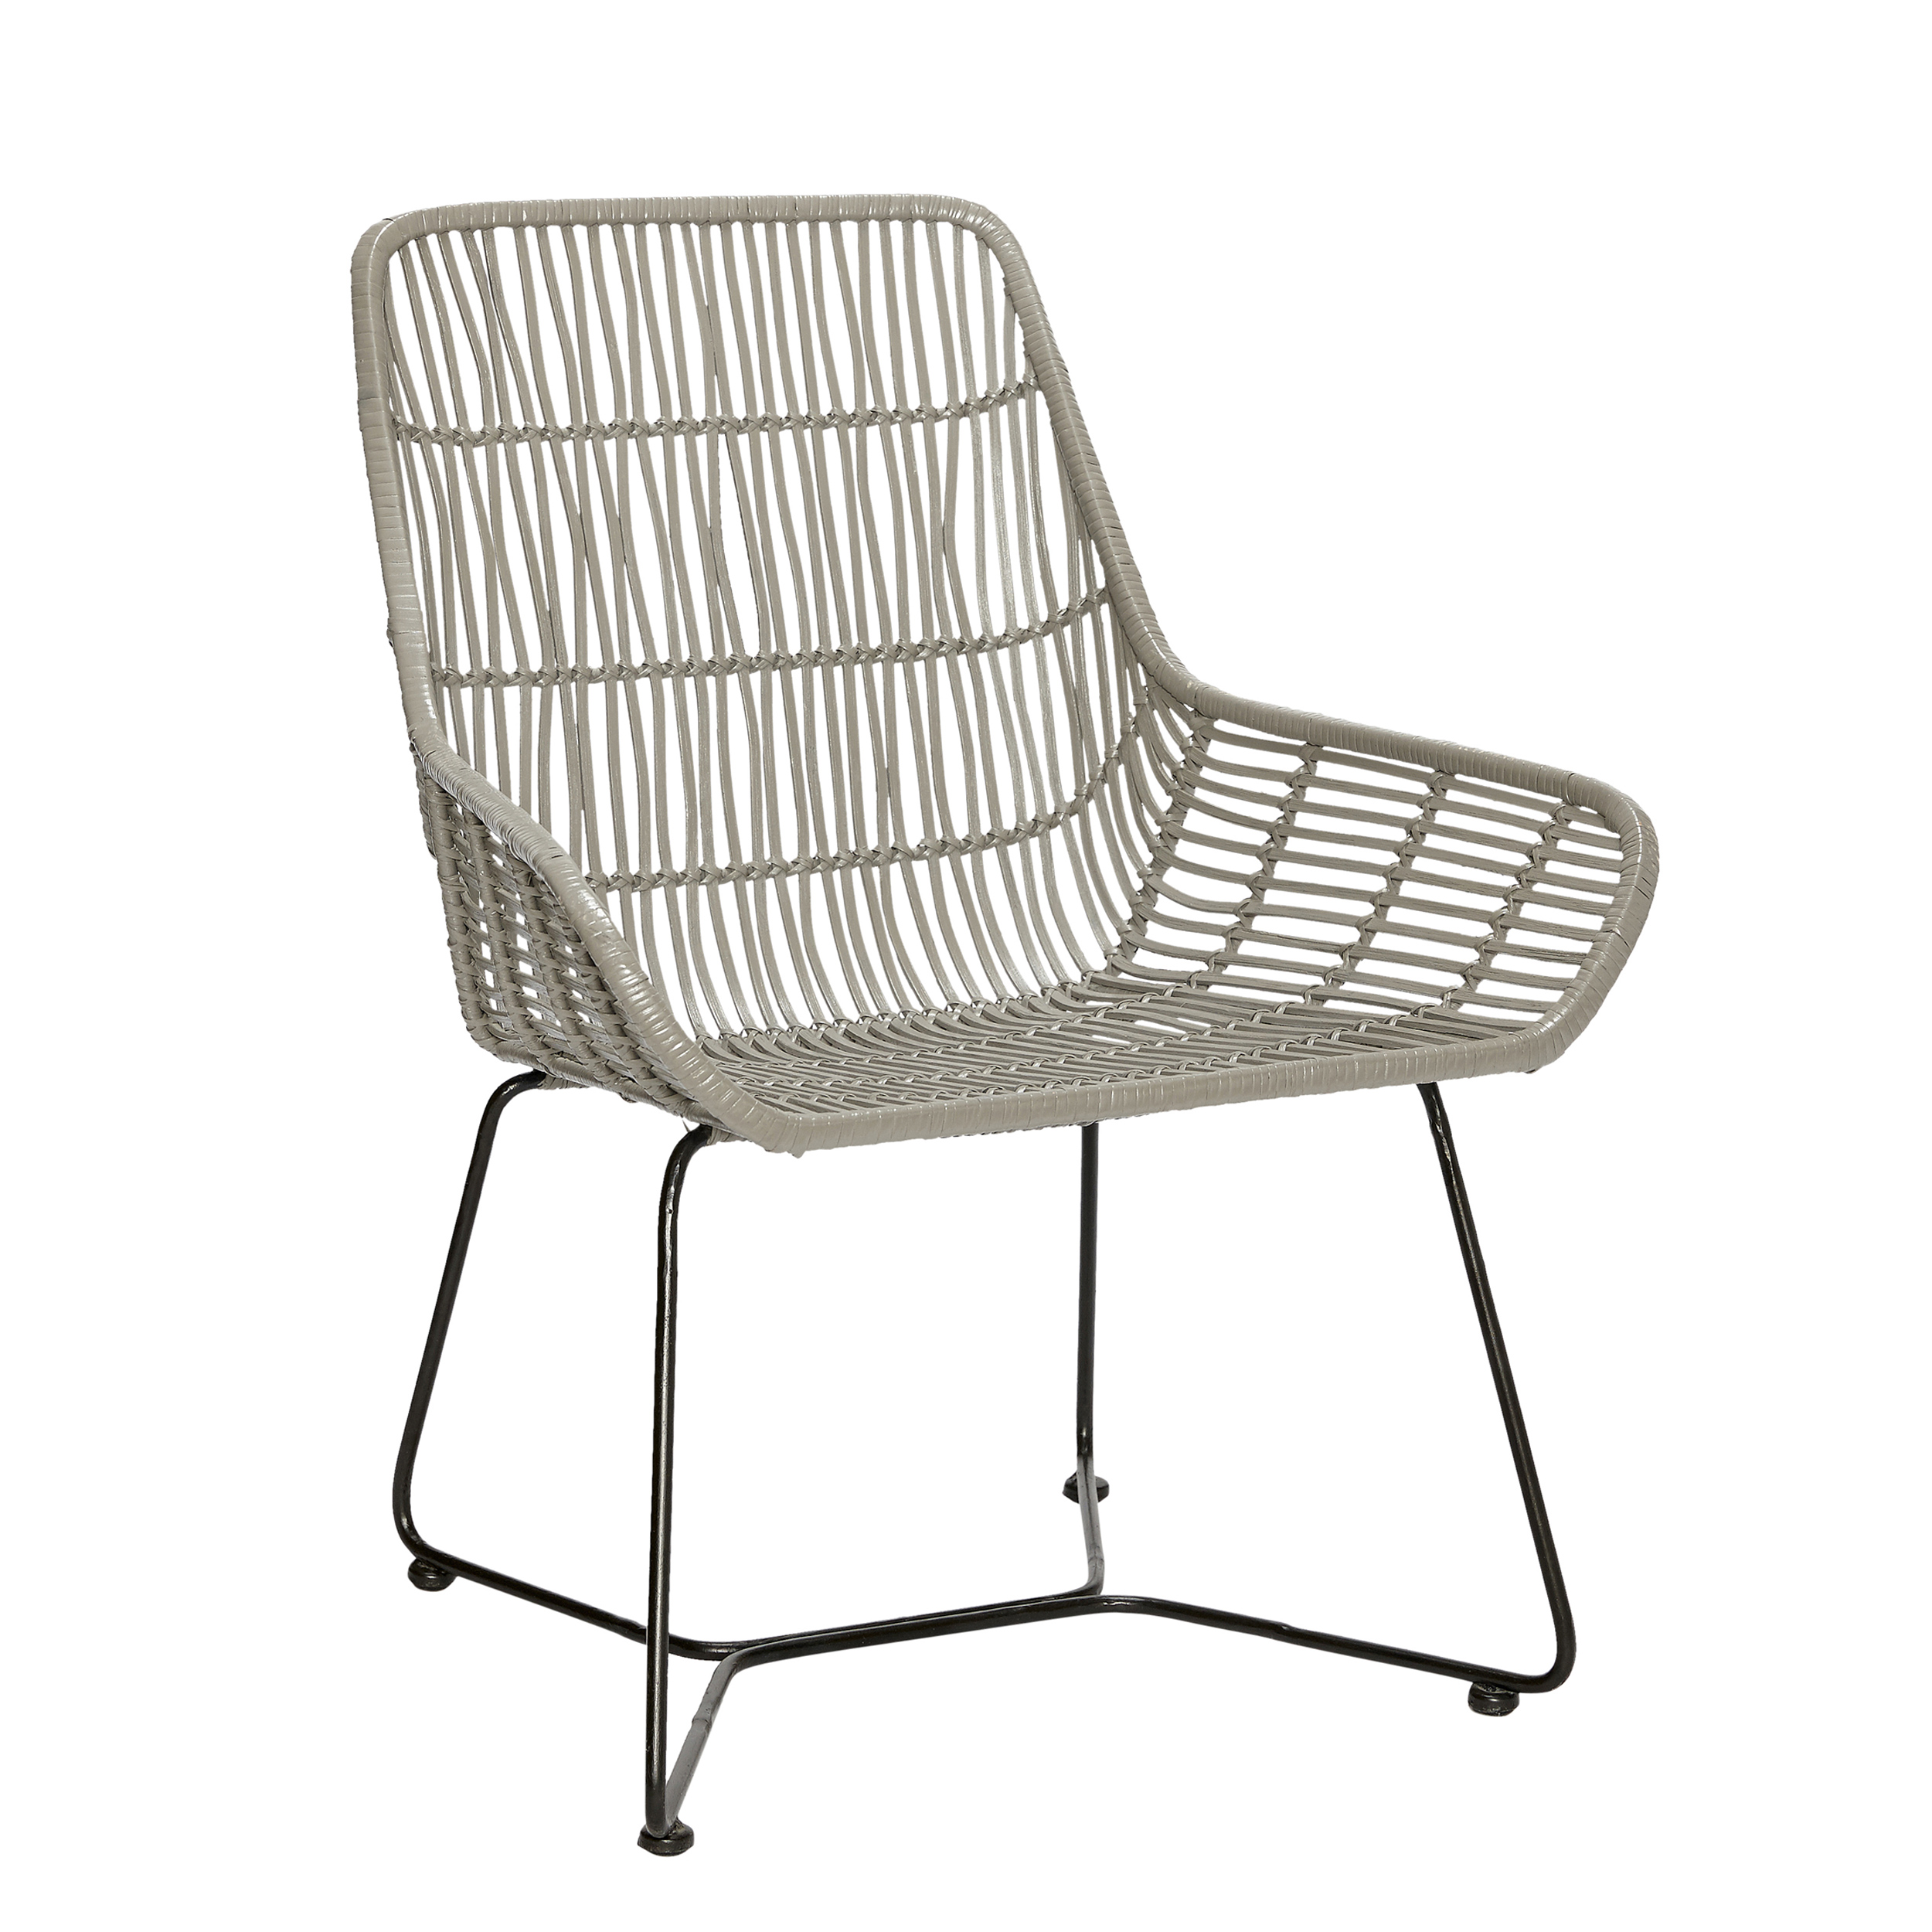 Rattanstuhl Grau Moderne Sessel Best Hay About A Lounge Chair Aal Sessel